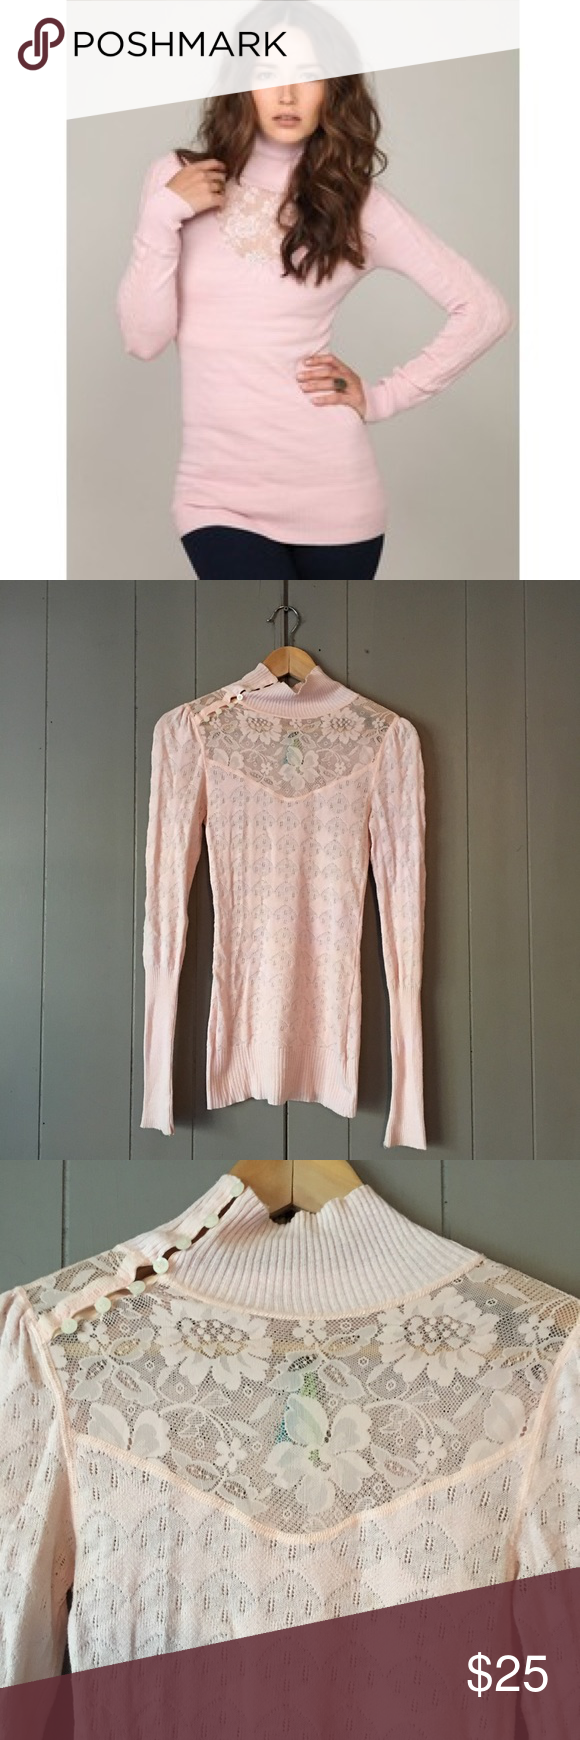 Free People Light Pink Lace Cotton Sweater✨ | Cotton sweater ...